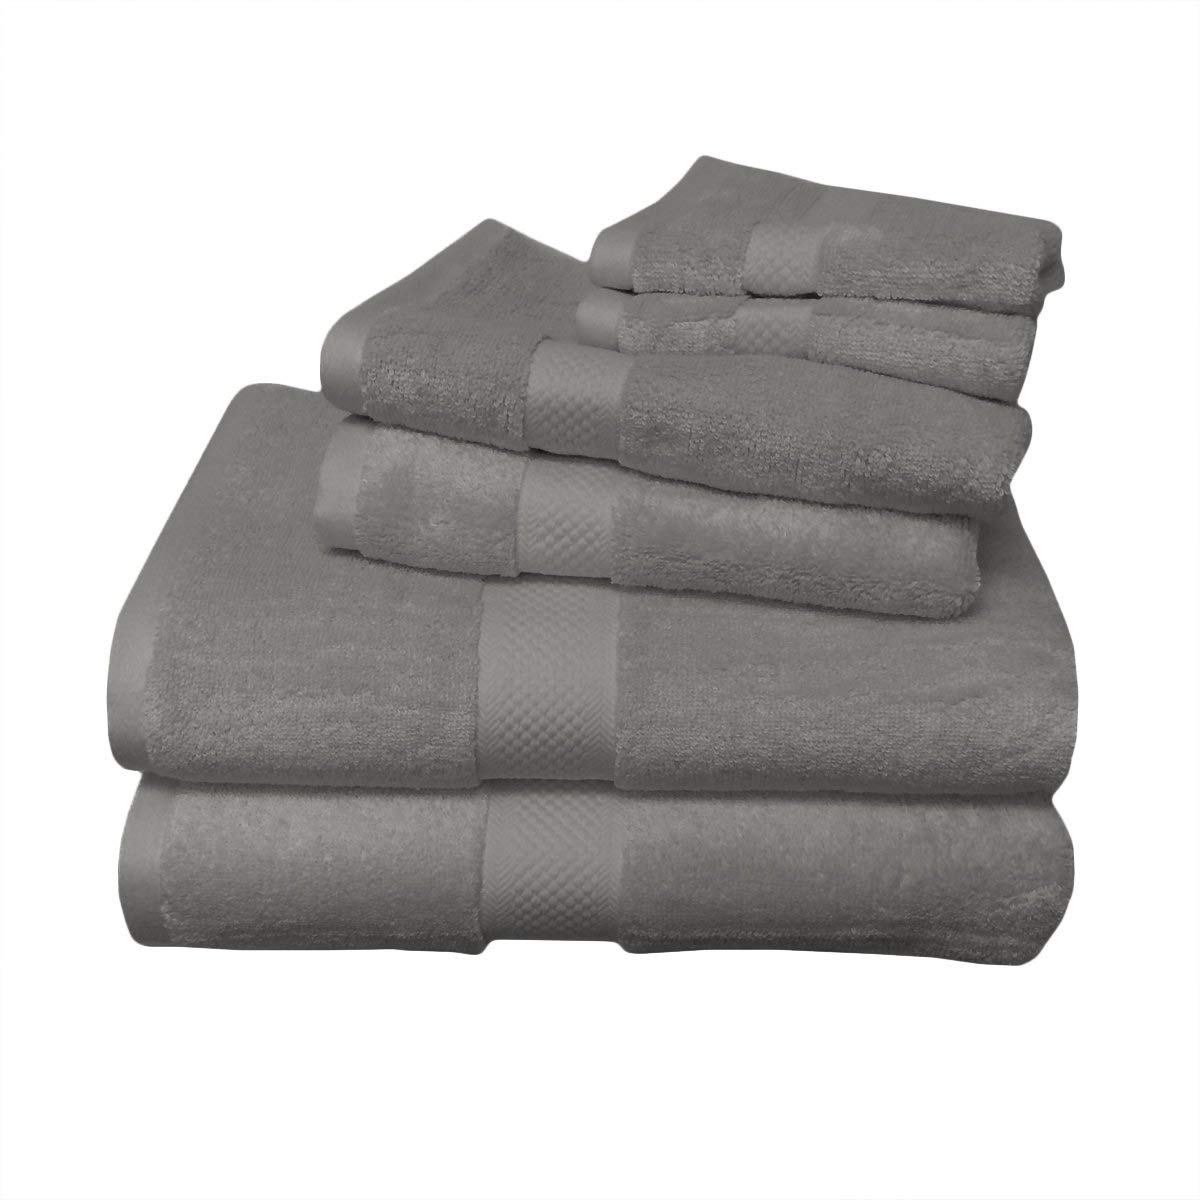 6pc Gray Rayon from Bamboo Blend Towel Set, Includes 2 Bath Towels, 2 Hand Towels, 2 Wash Clothes